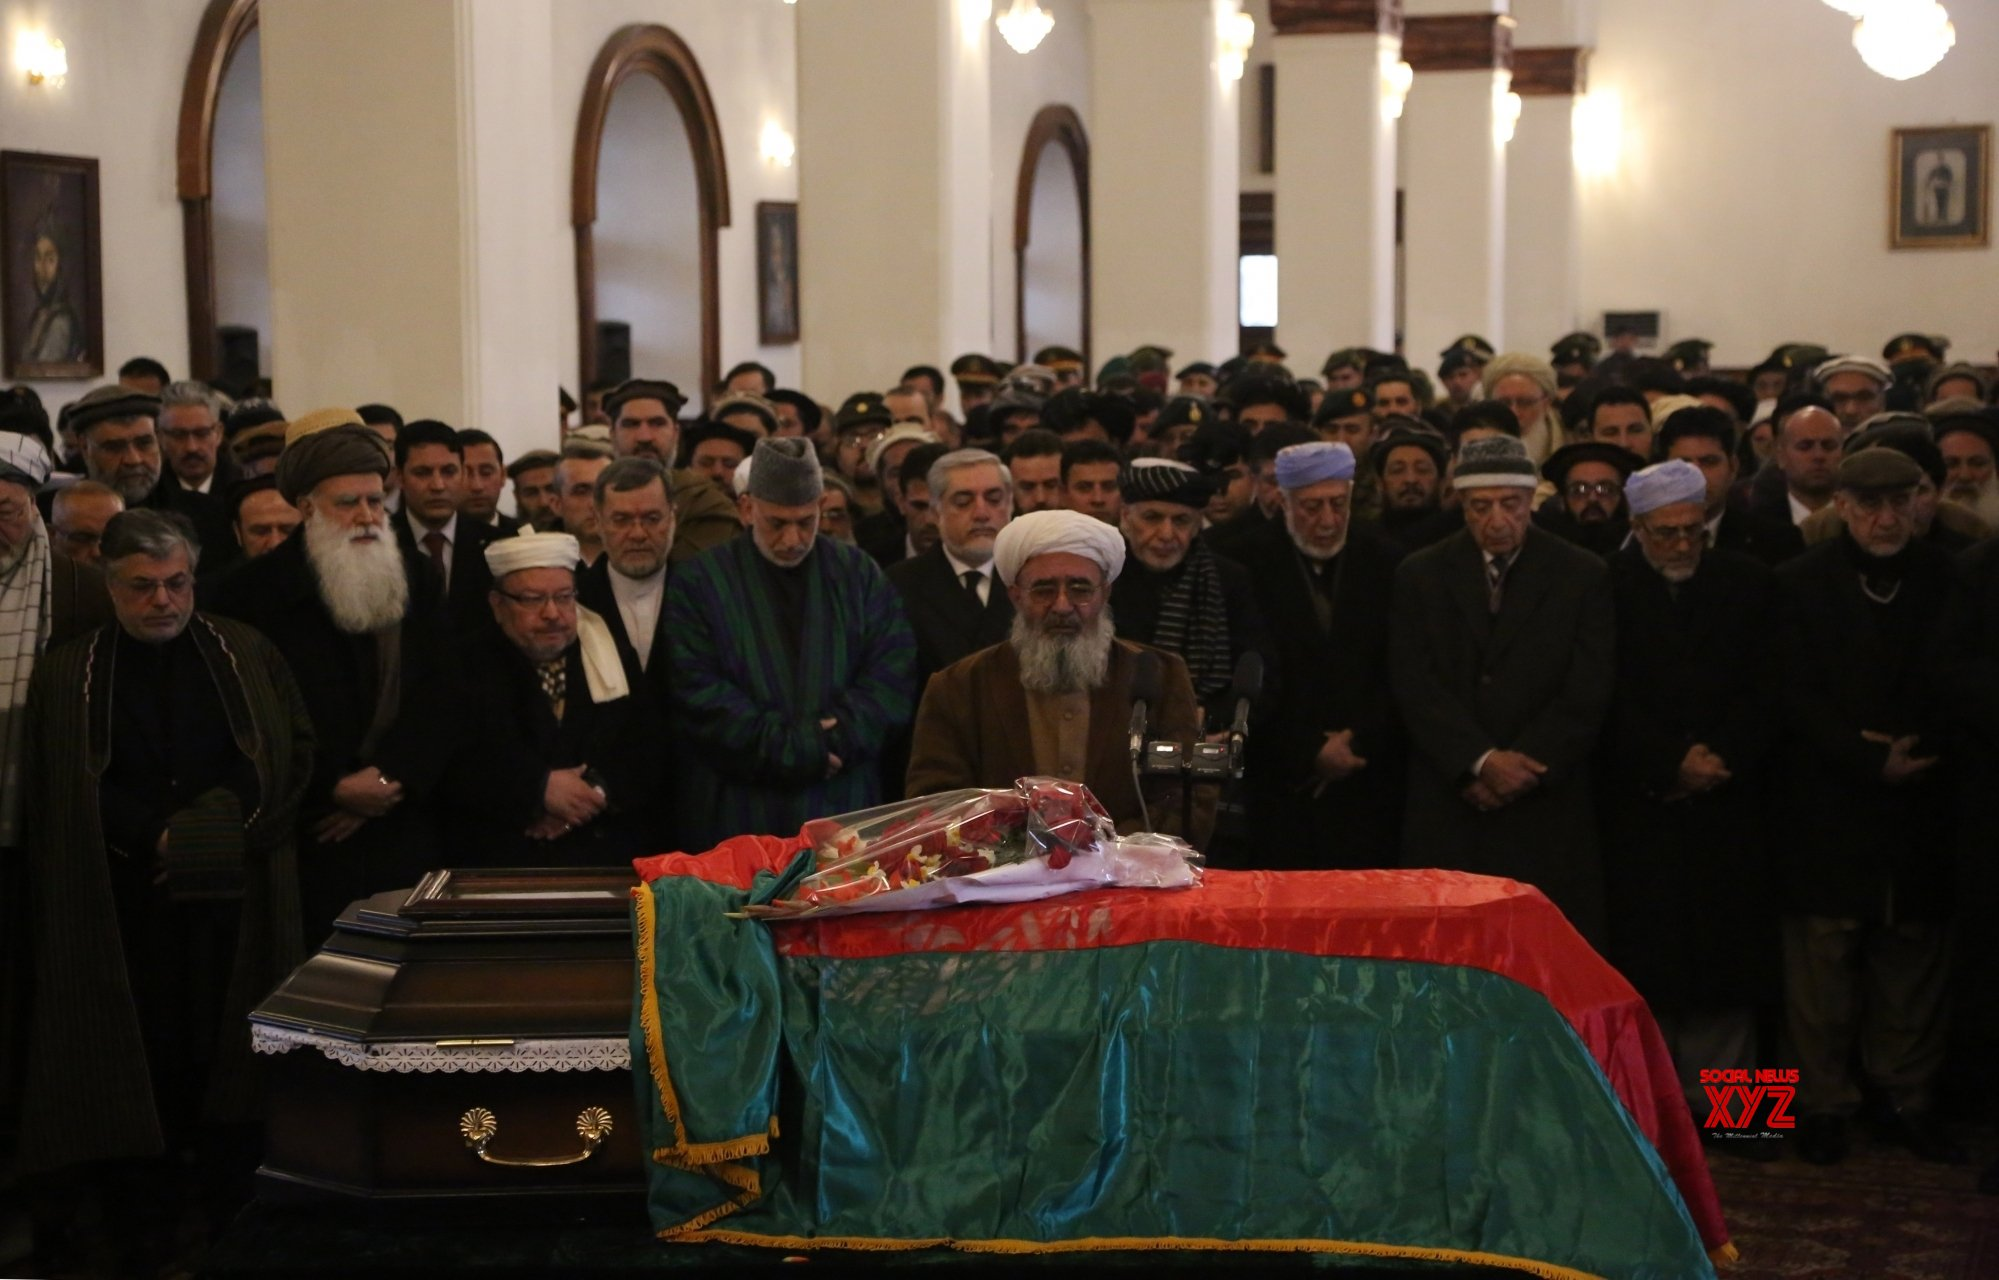 AFGHANISTAN - KABUL - FUNERAL CEREMONY - FORMER PRESIDENT #Gallery